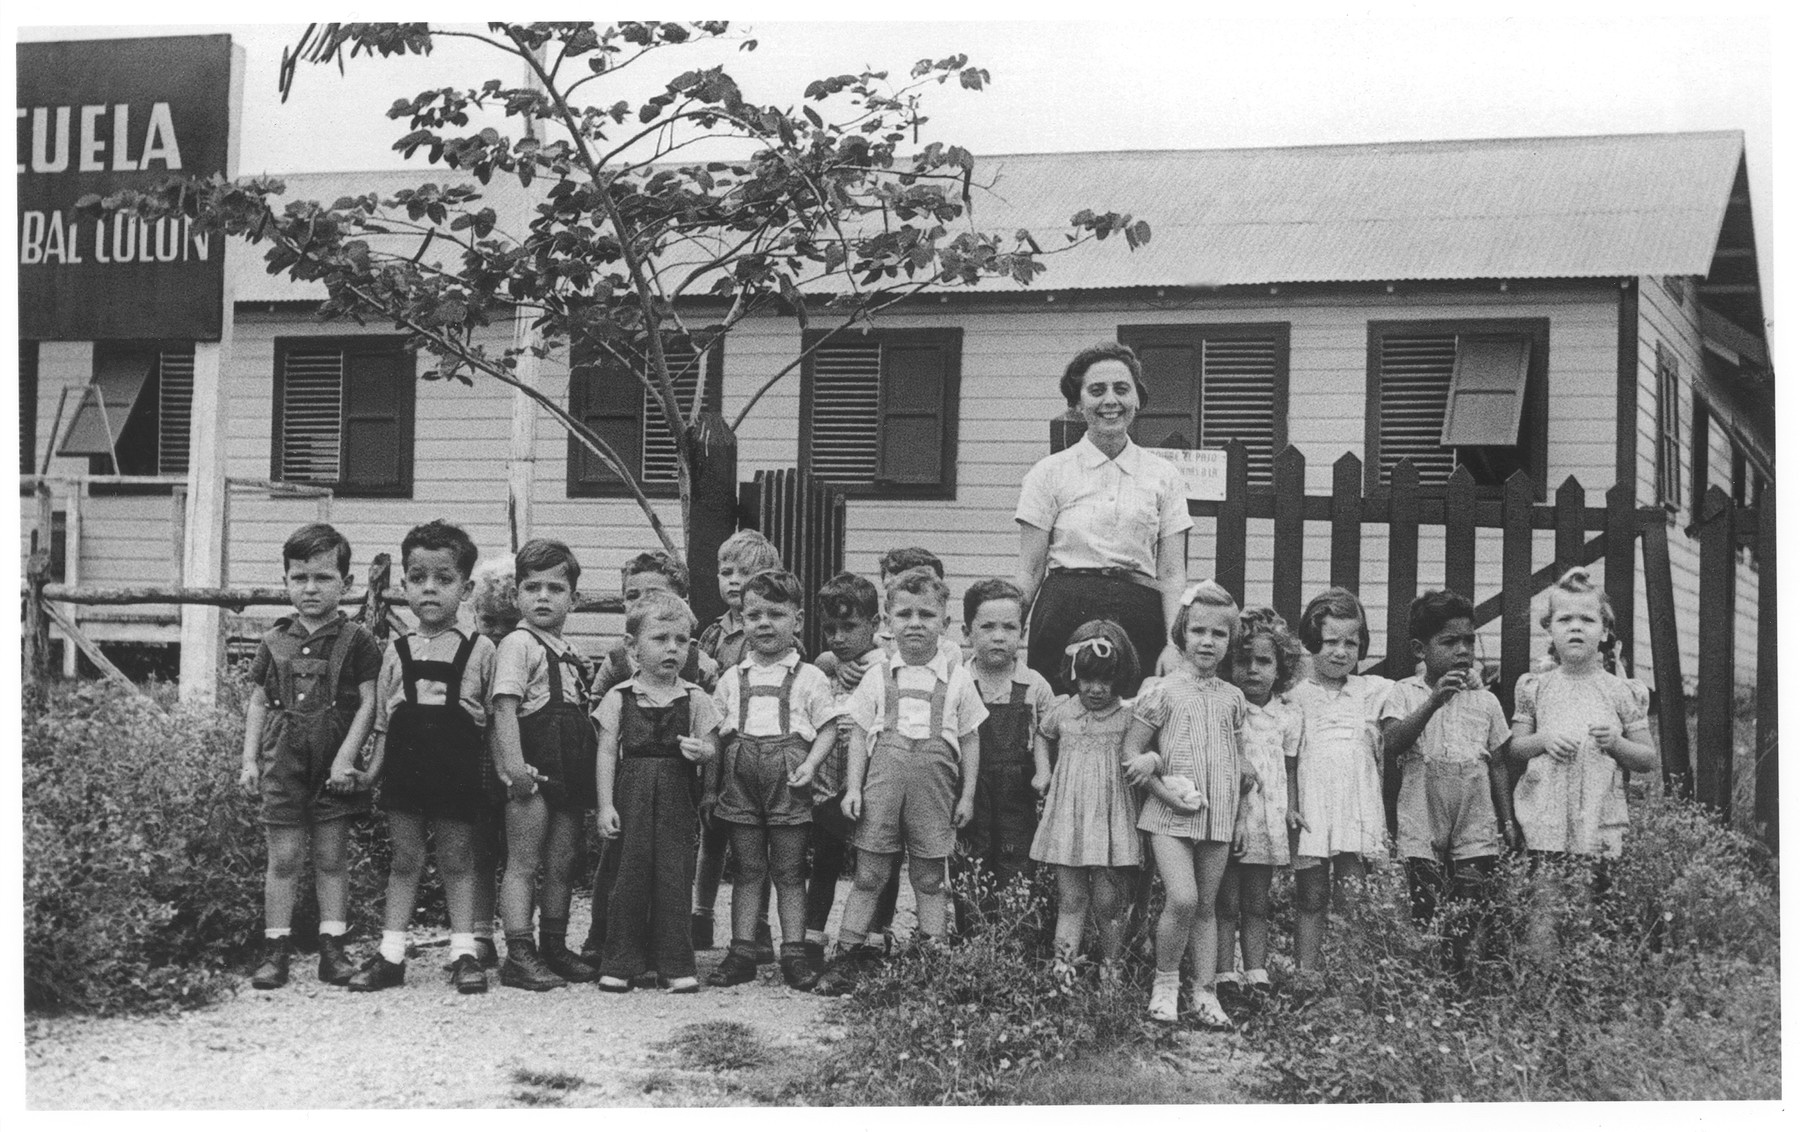 Group portrait of Jewish refugee preschoolers at the Christobal Colon school in Sosua.  Behind them stands their teacher, Hella Blum.  Among those pictured are Franklin Hess, Fritz Rosenzweig, Henry Spitzer, Rene Kirchheimer, Renee Hurwicz, Peter Papernik and Peter Dicker, Hank Goldman, Henry Spitzer, Edi Brinehalter.  The Christobal Colon school was founded in 1941 by DORSA the Dominican Republic Settlement Association, for the children of Jewish settlers.  The school consisted of two wooden buildings, one for the kindergarten and one for the elementary school.  The curriculum though similar to that of other Dominican schools, also included English and Jewish studies.